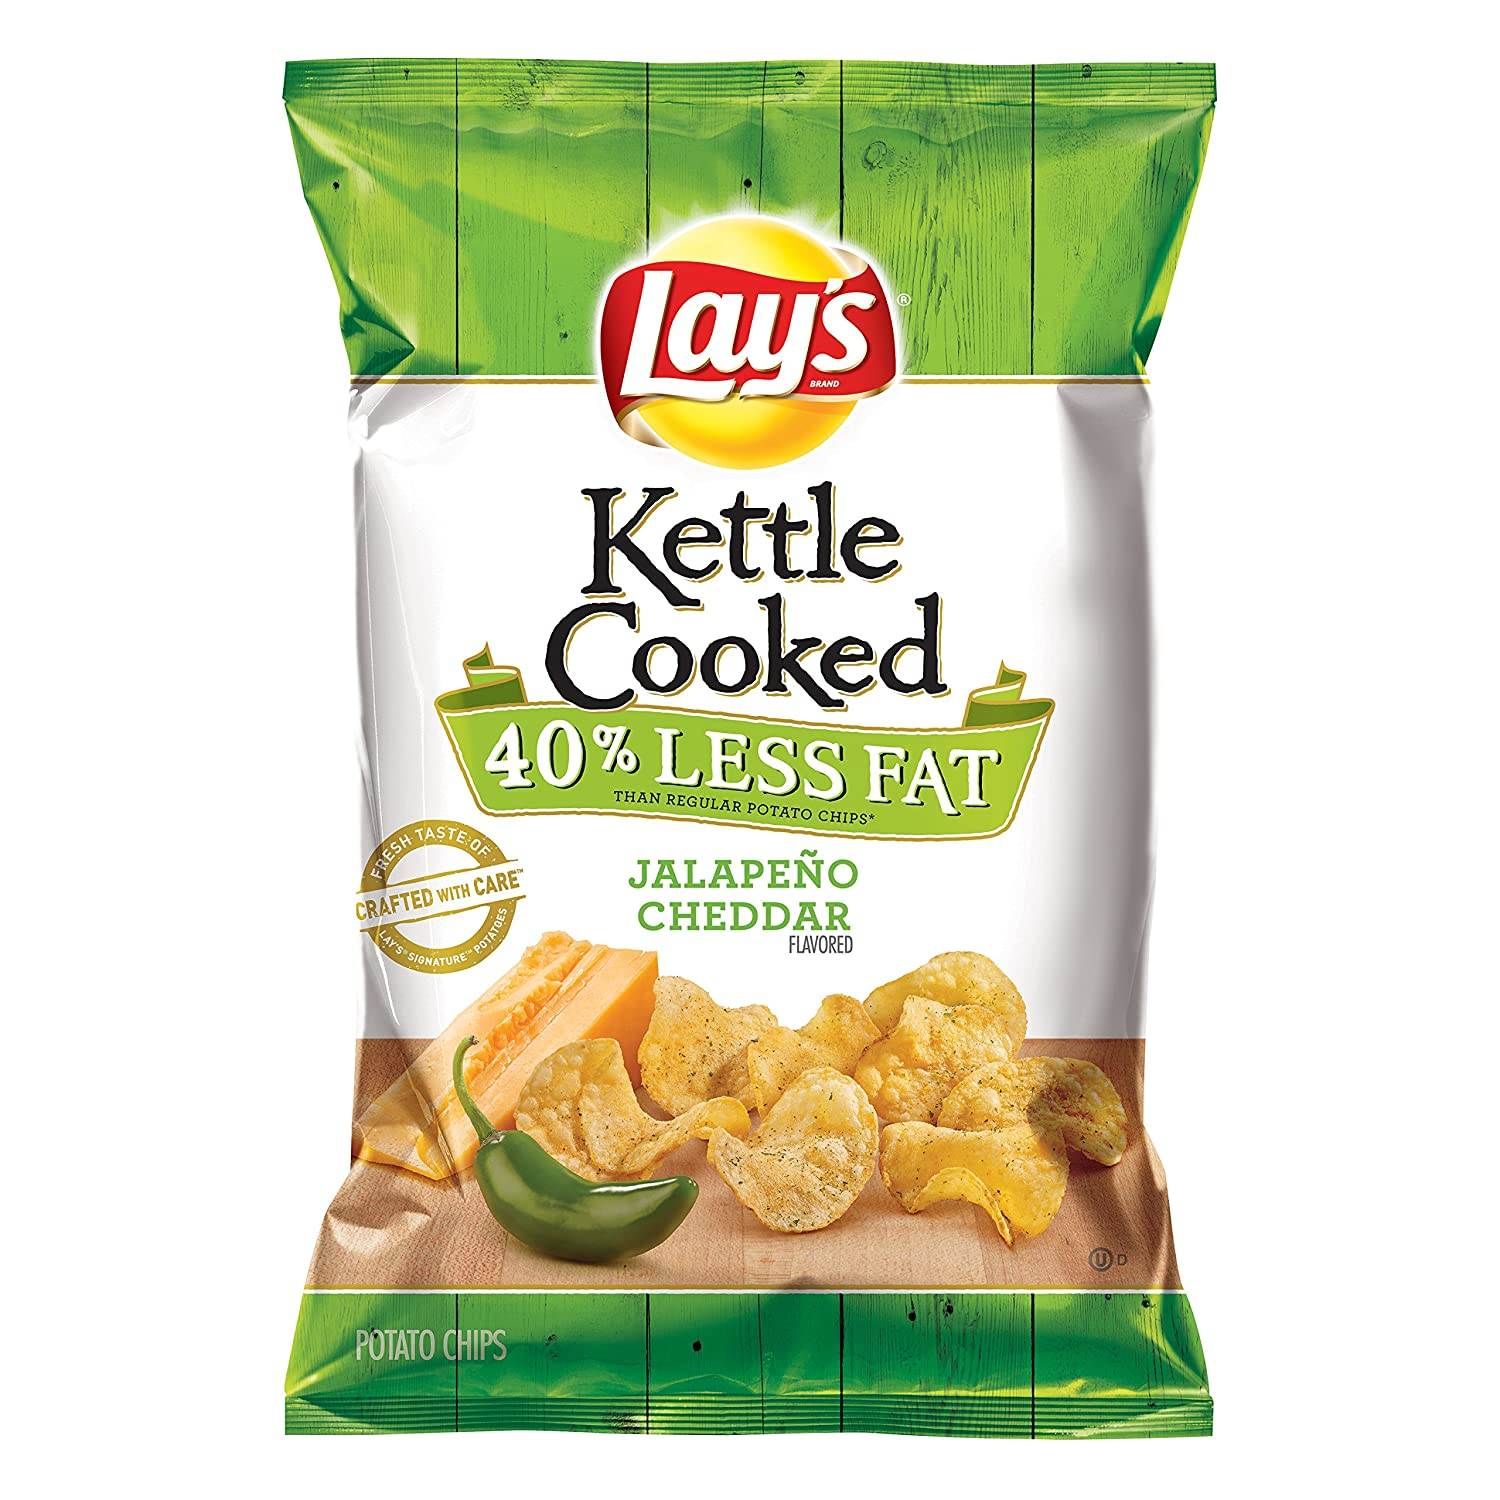 Amazoncom Lays Kettle Cooked 40 Less Fat Jalapeño Cheddar